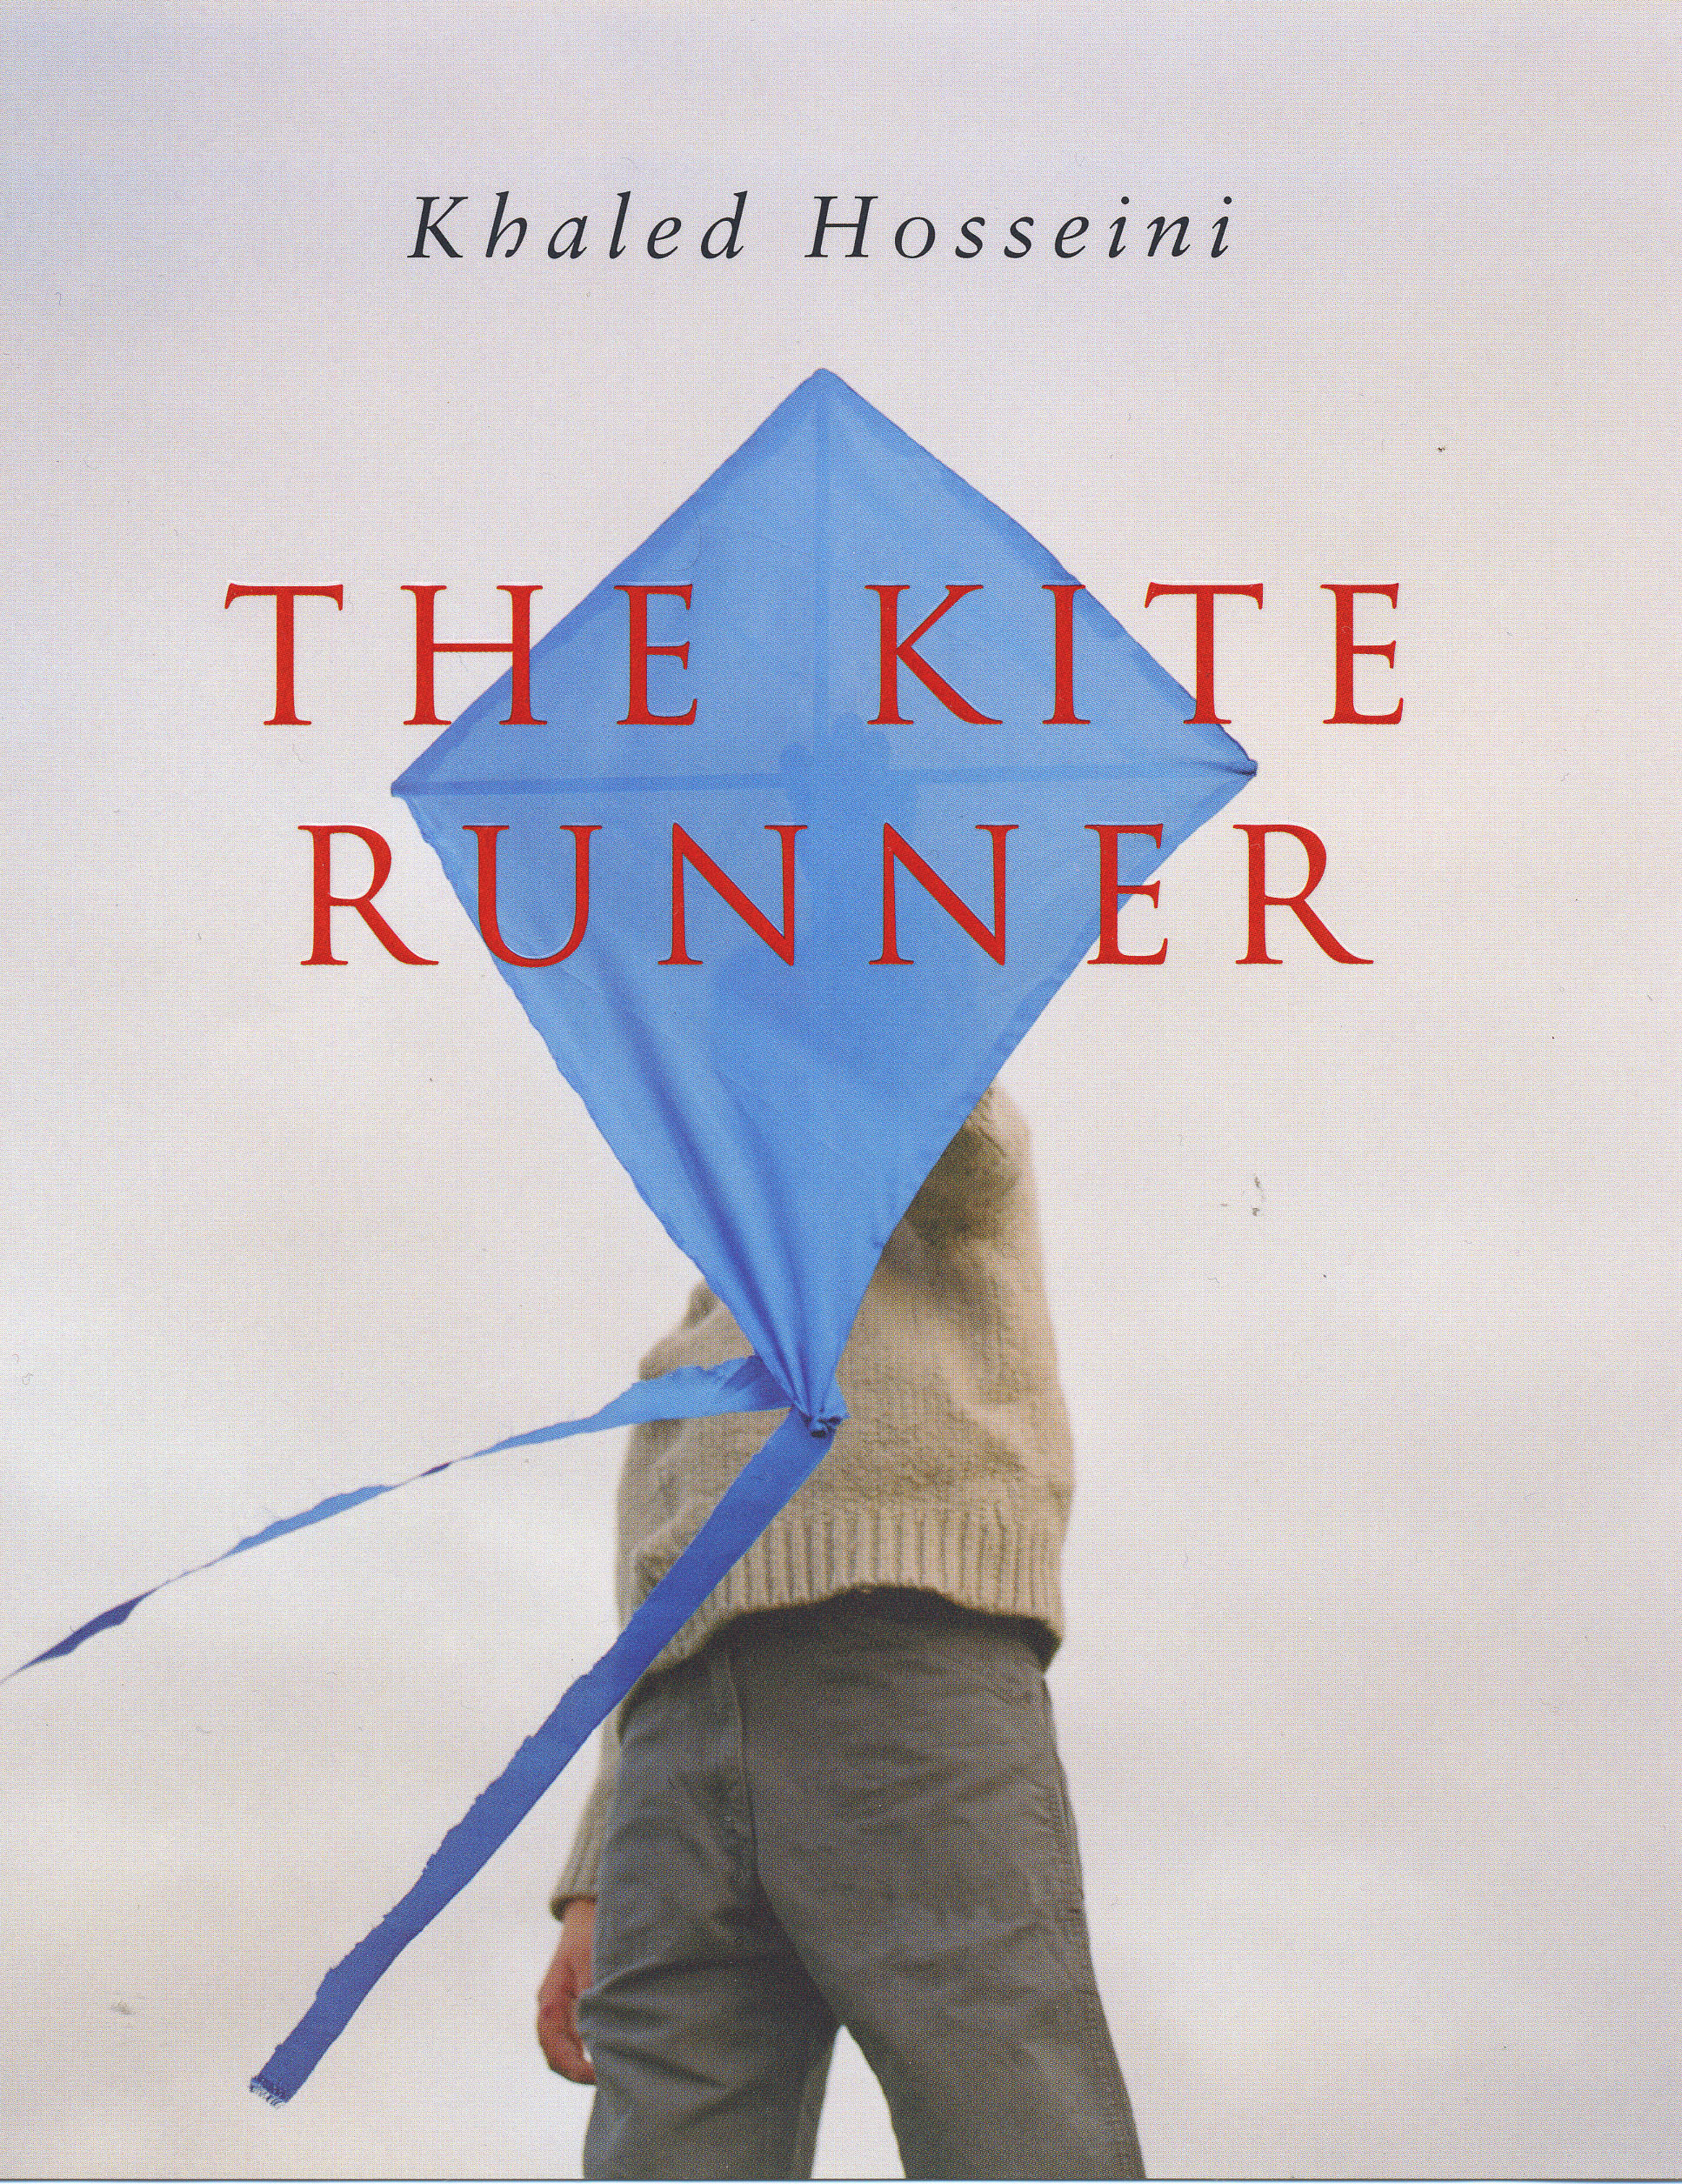 archetypes in the kite runner The best study guide to the kite runner on the planet, from the creators of sparknotes get the summaries, analysis, and quotes you need hosseini's family then applied for asylum in the united states, and they moved to california when hosseini was fifteen.